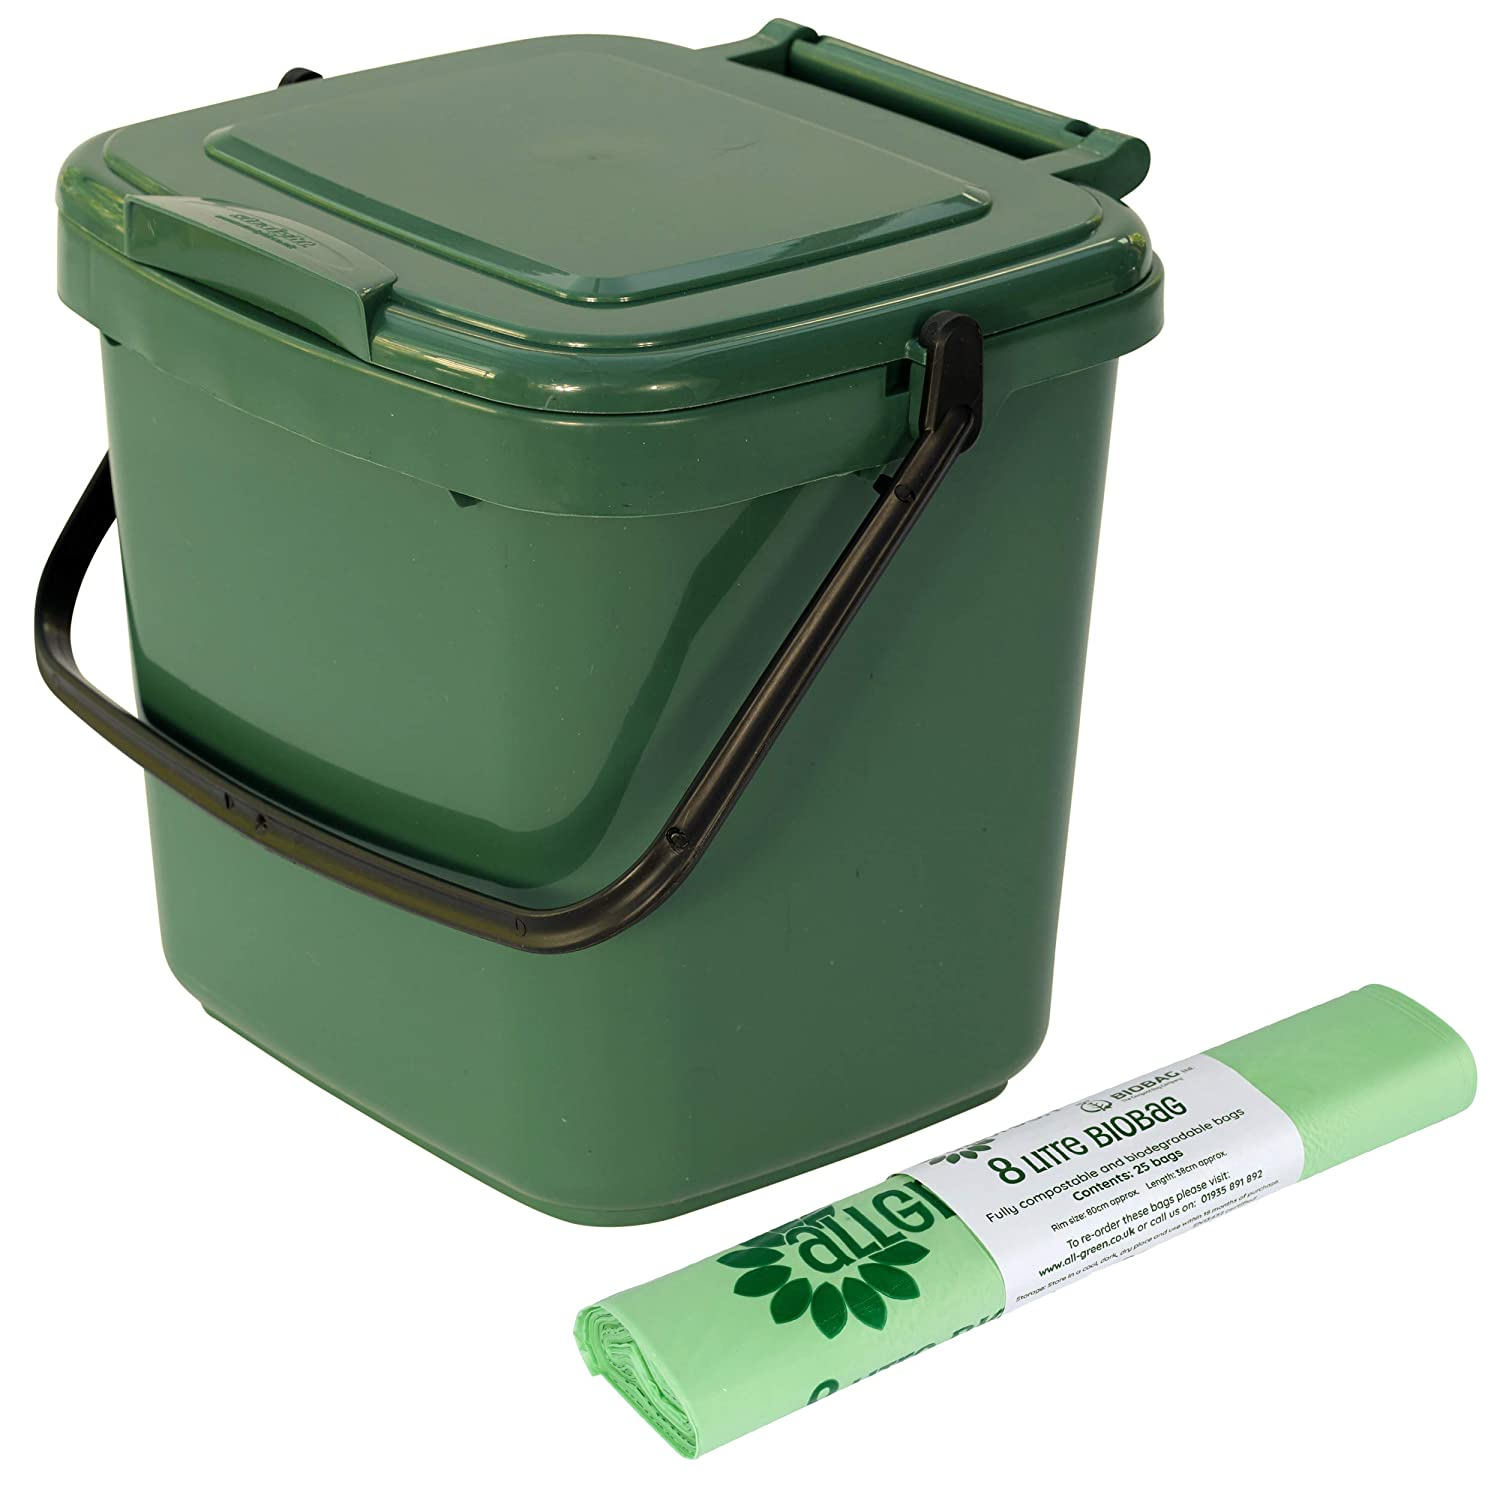 Green Kitchen Compost Caddy & 25x 8L Compostable Bags - for Food Waste Recycling (7 Litre) - 7L Plastic Composting Bin All-Green